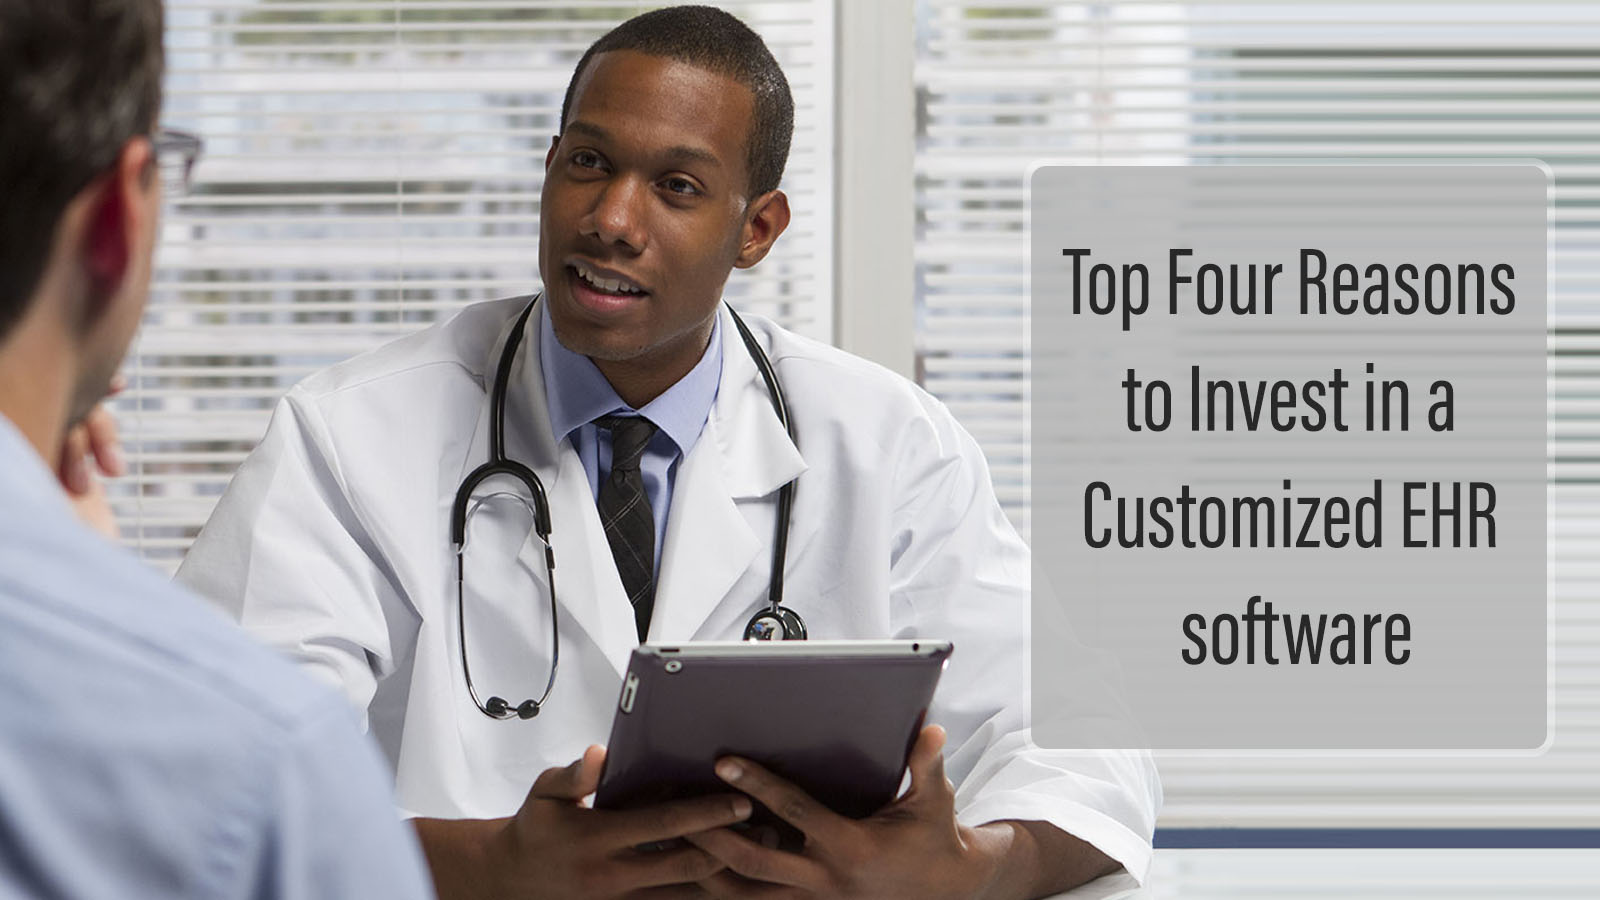 Top Four Reasons to Invest in a Customized EHR software